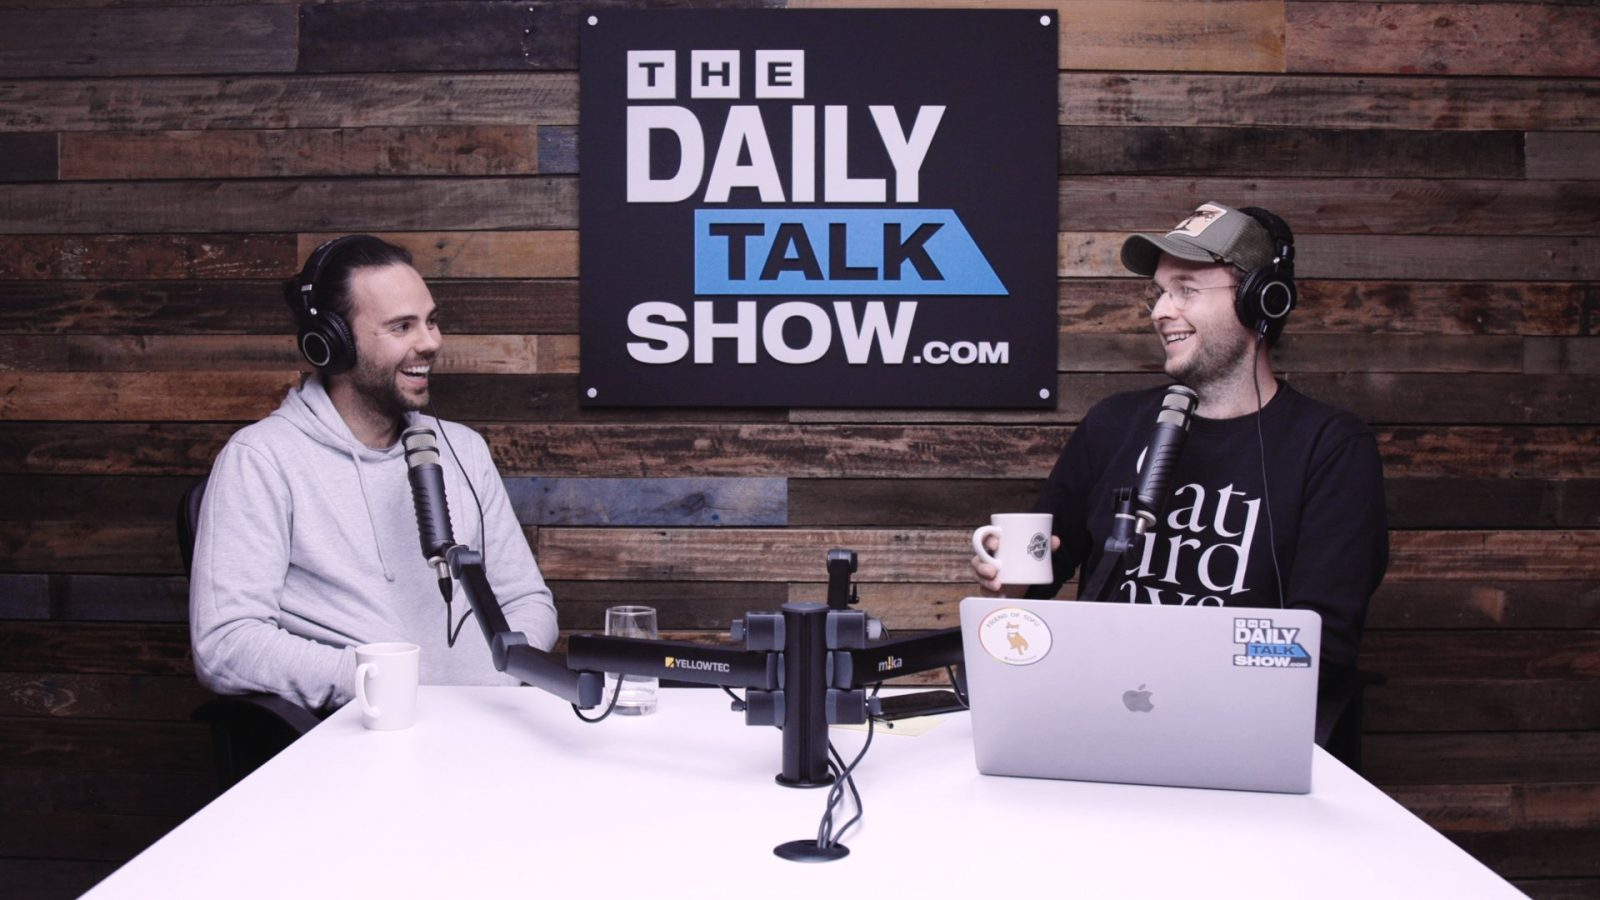 The-Daily-Talk-Show-396